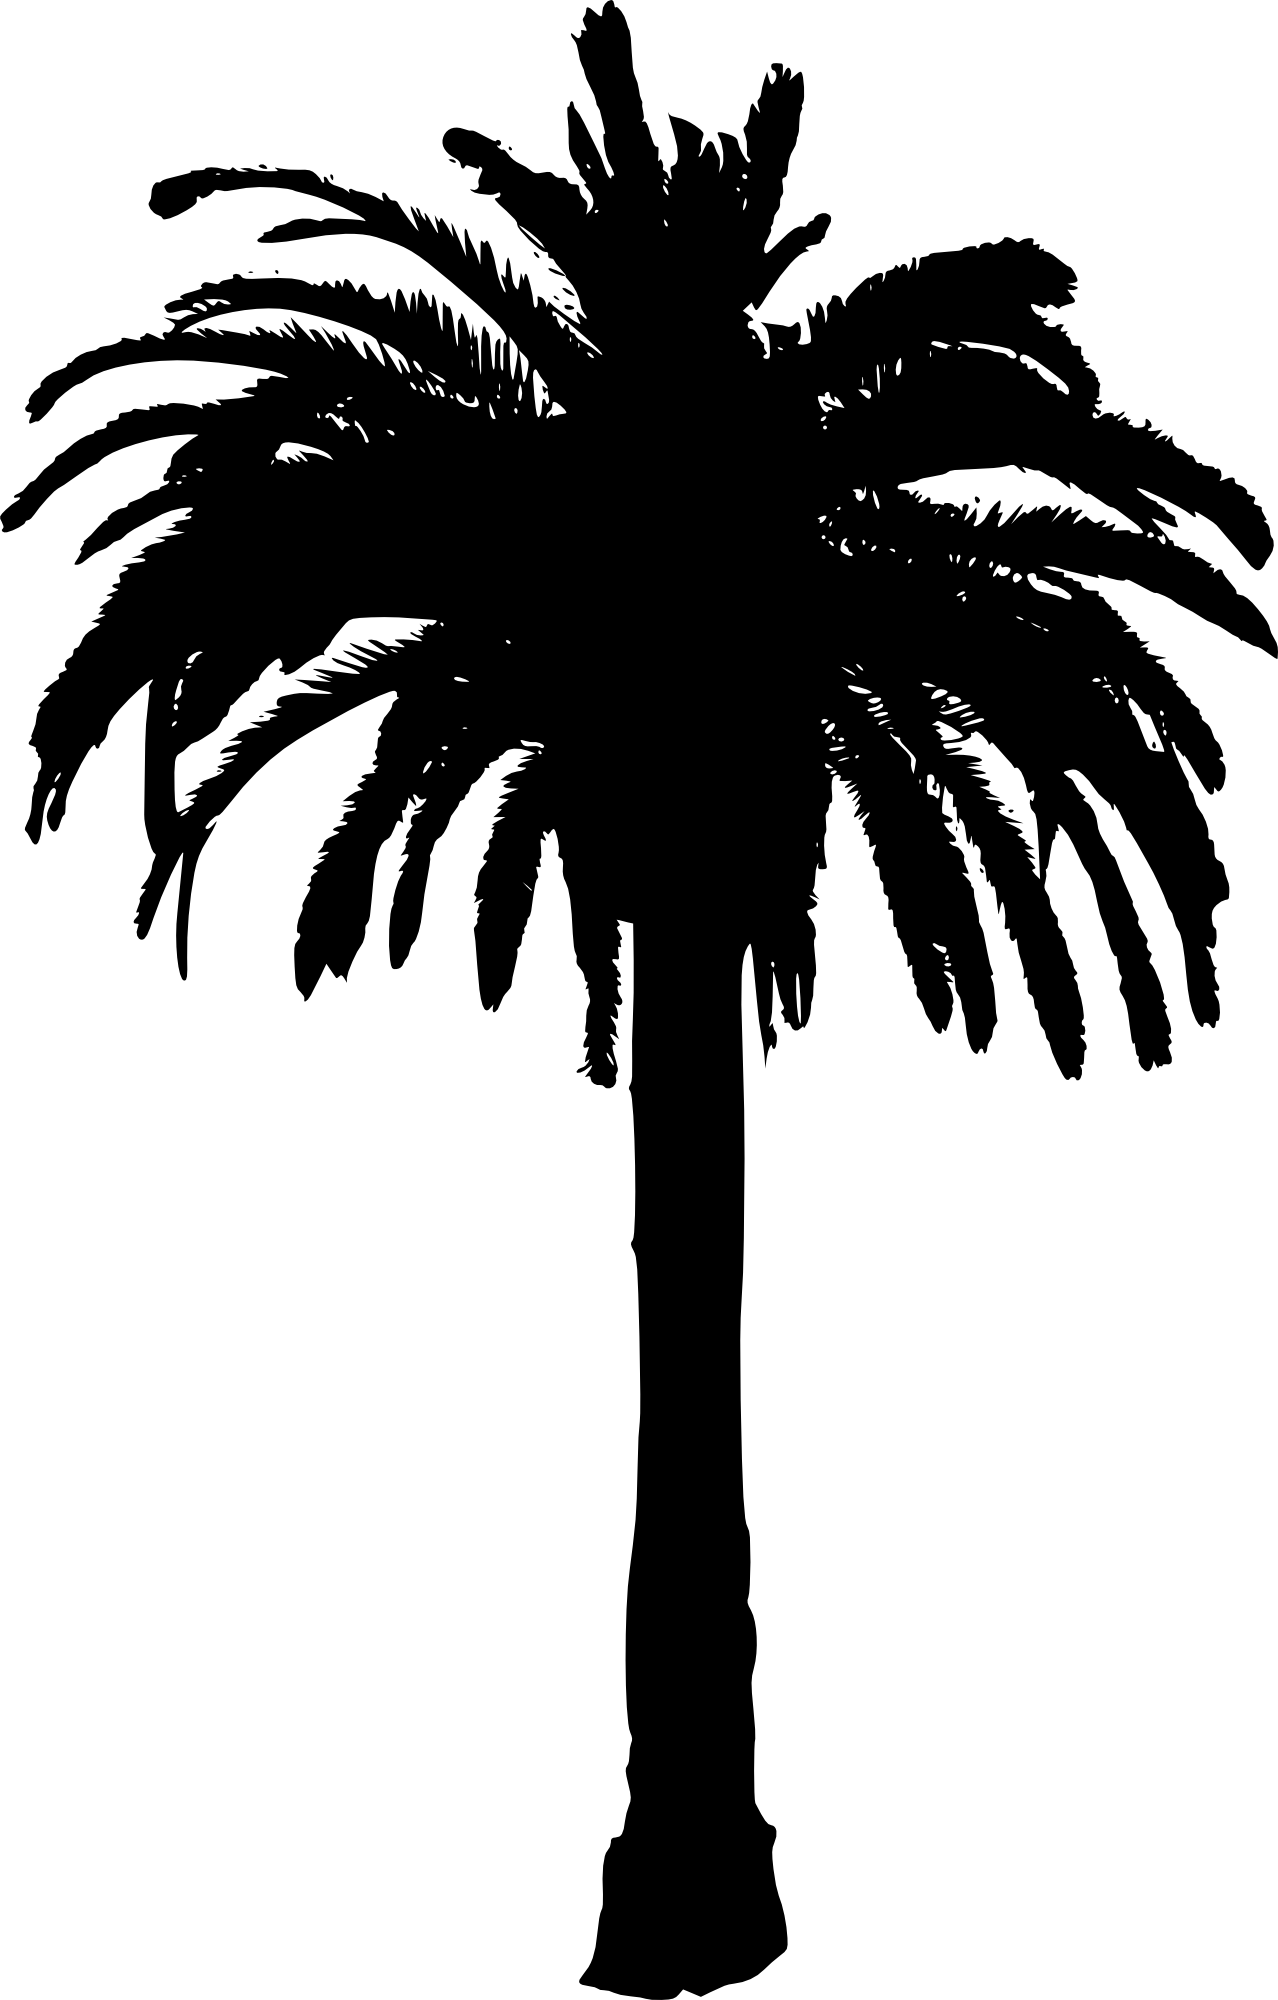 Palm tree sun clipart png transparent Bamboo Forest Drawing at GetDrawings.com | Free for personal use ... png transparent